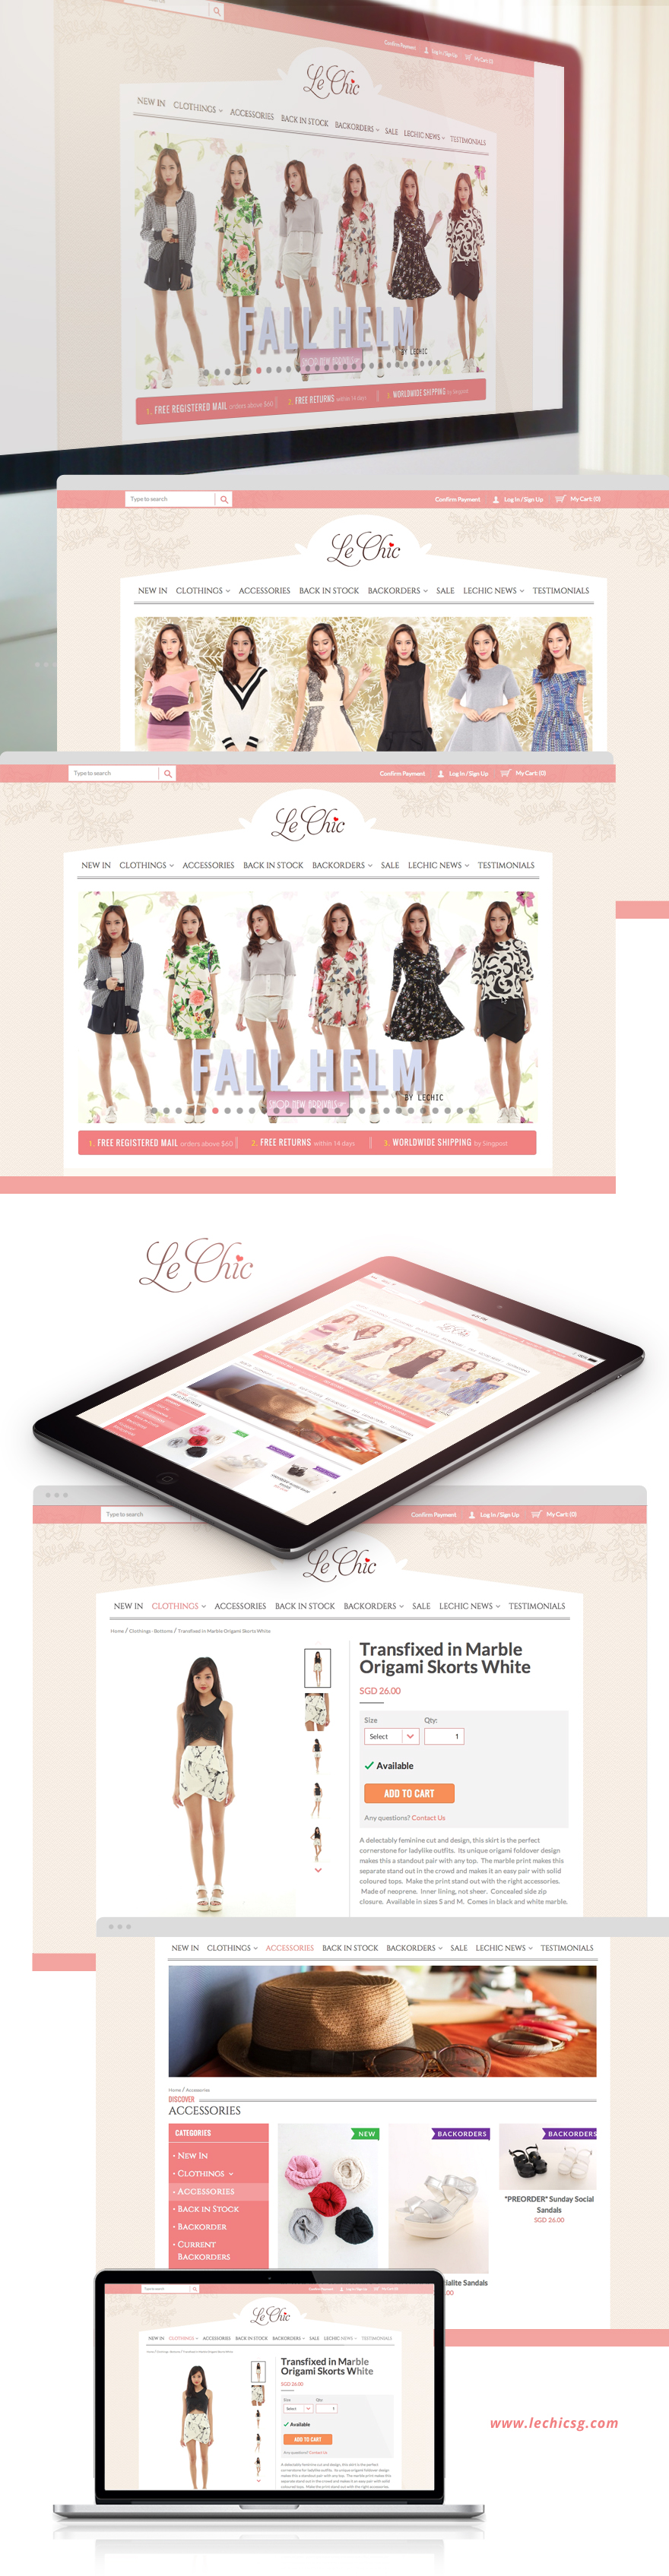 Projects - LeChic